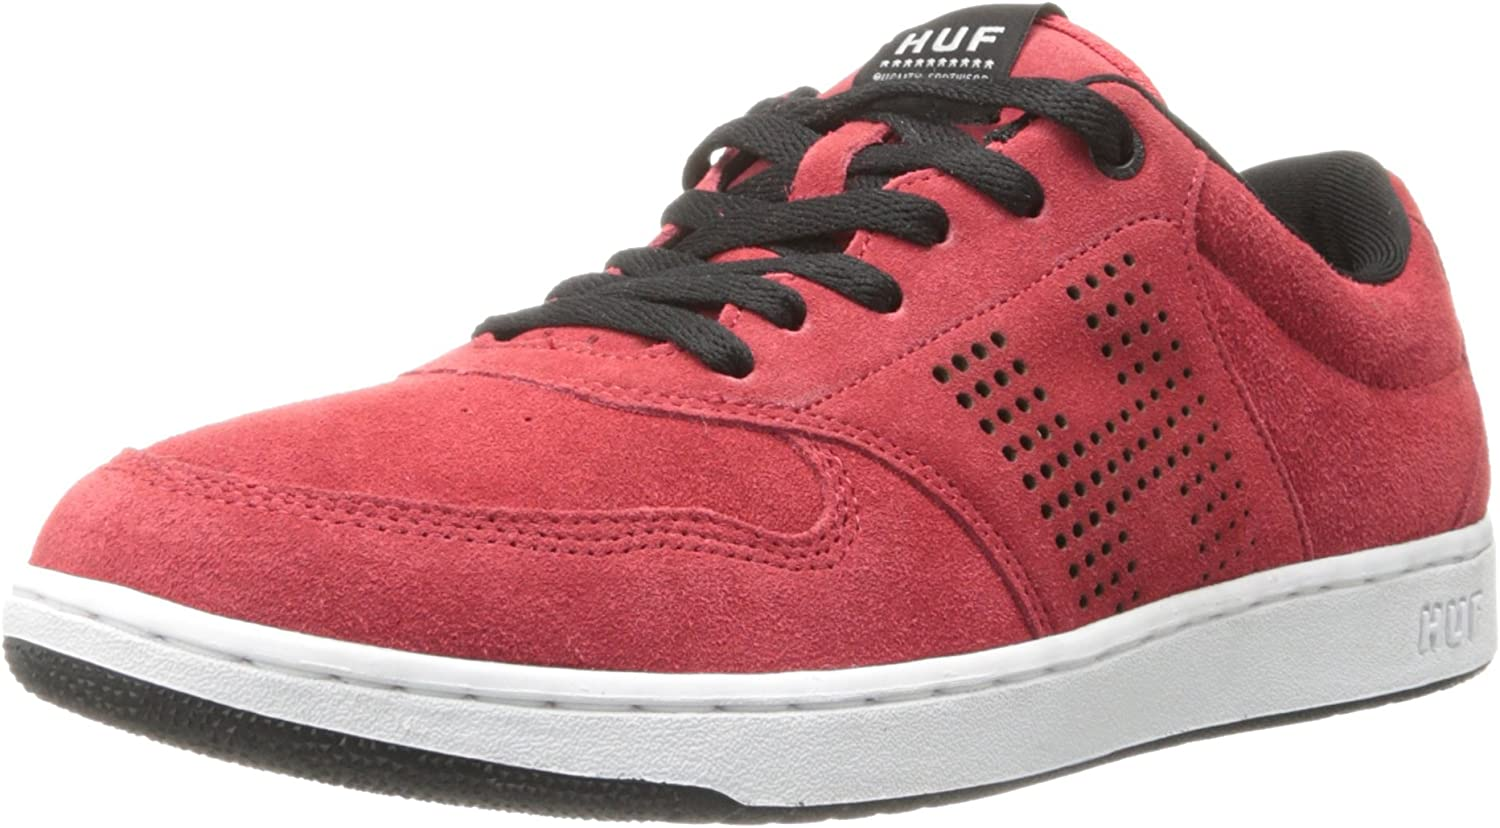 HUF Men's Noble Recommendation Our shop OFFers the best service Shoe Skateboard